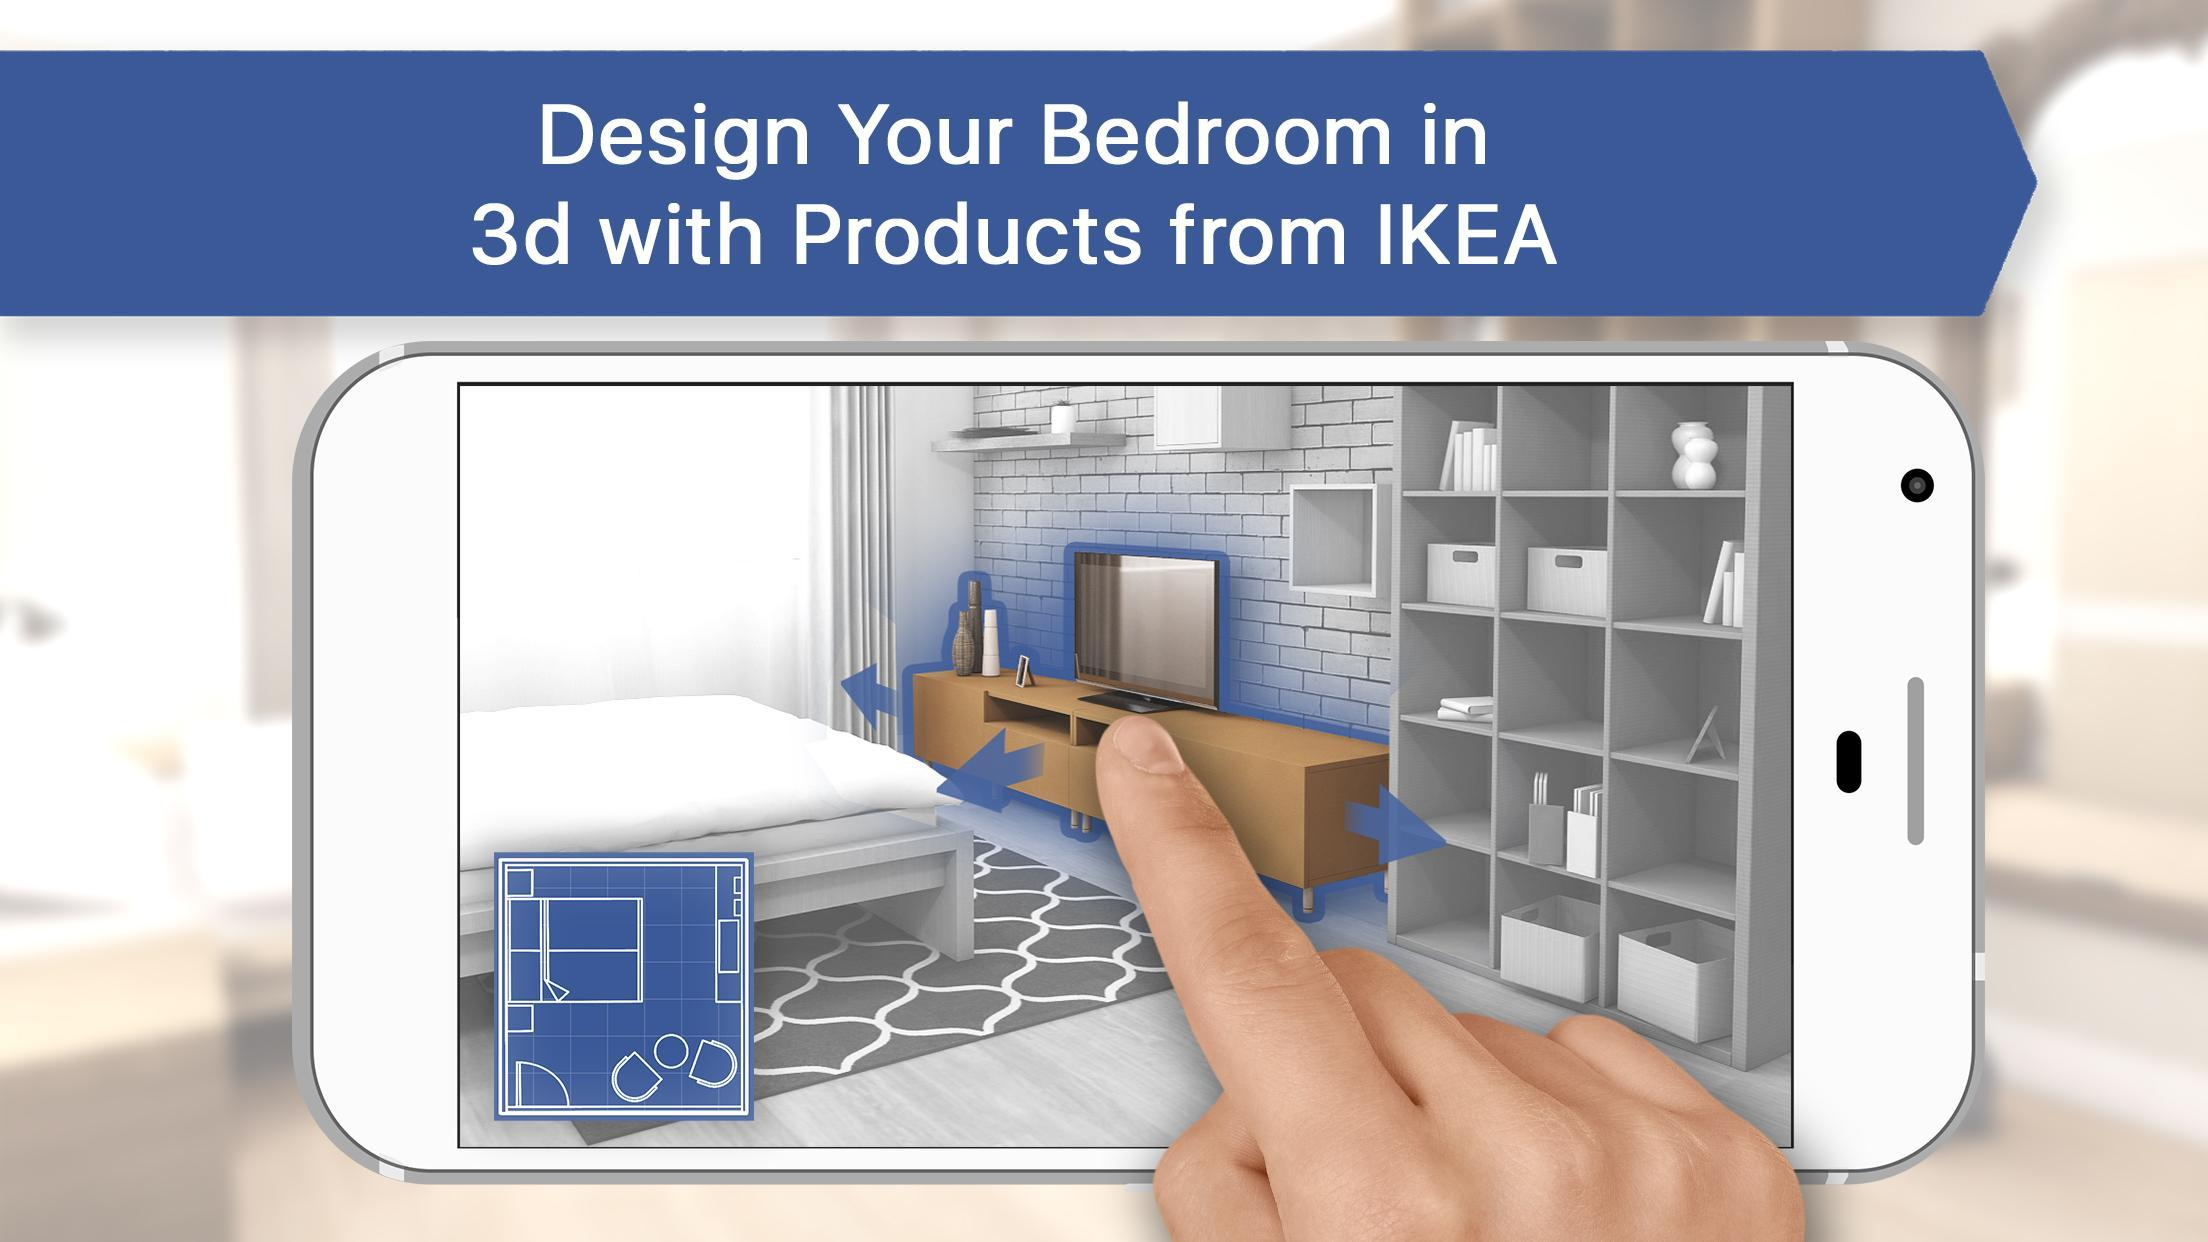 Ikea Home Planner Italiano 3d bedroom for ikea: room interior design planner for